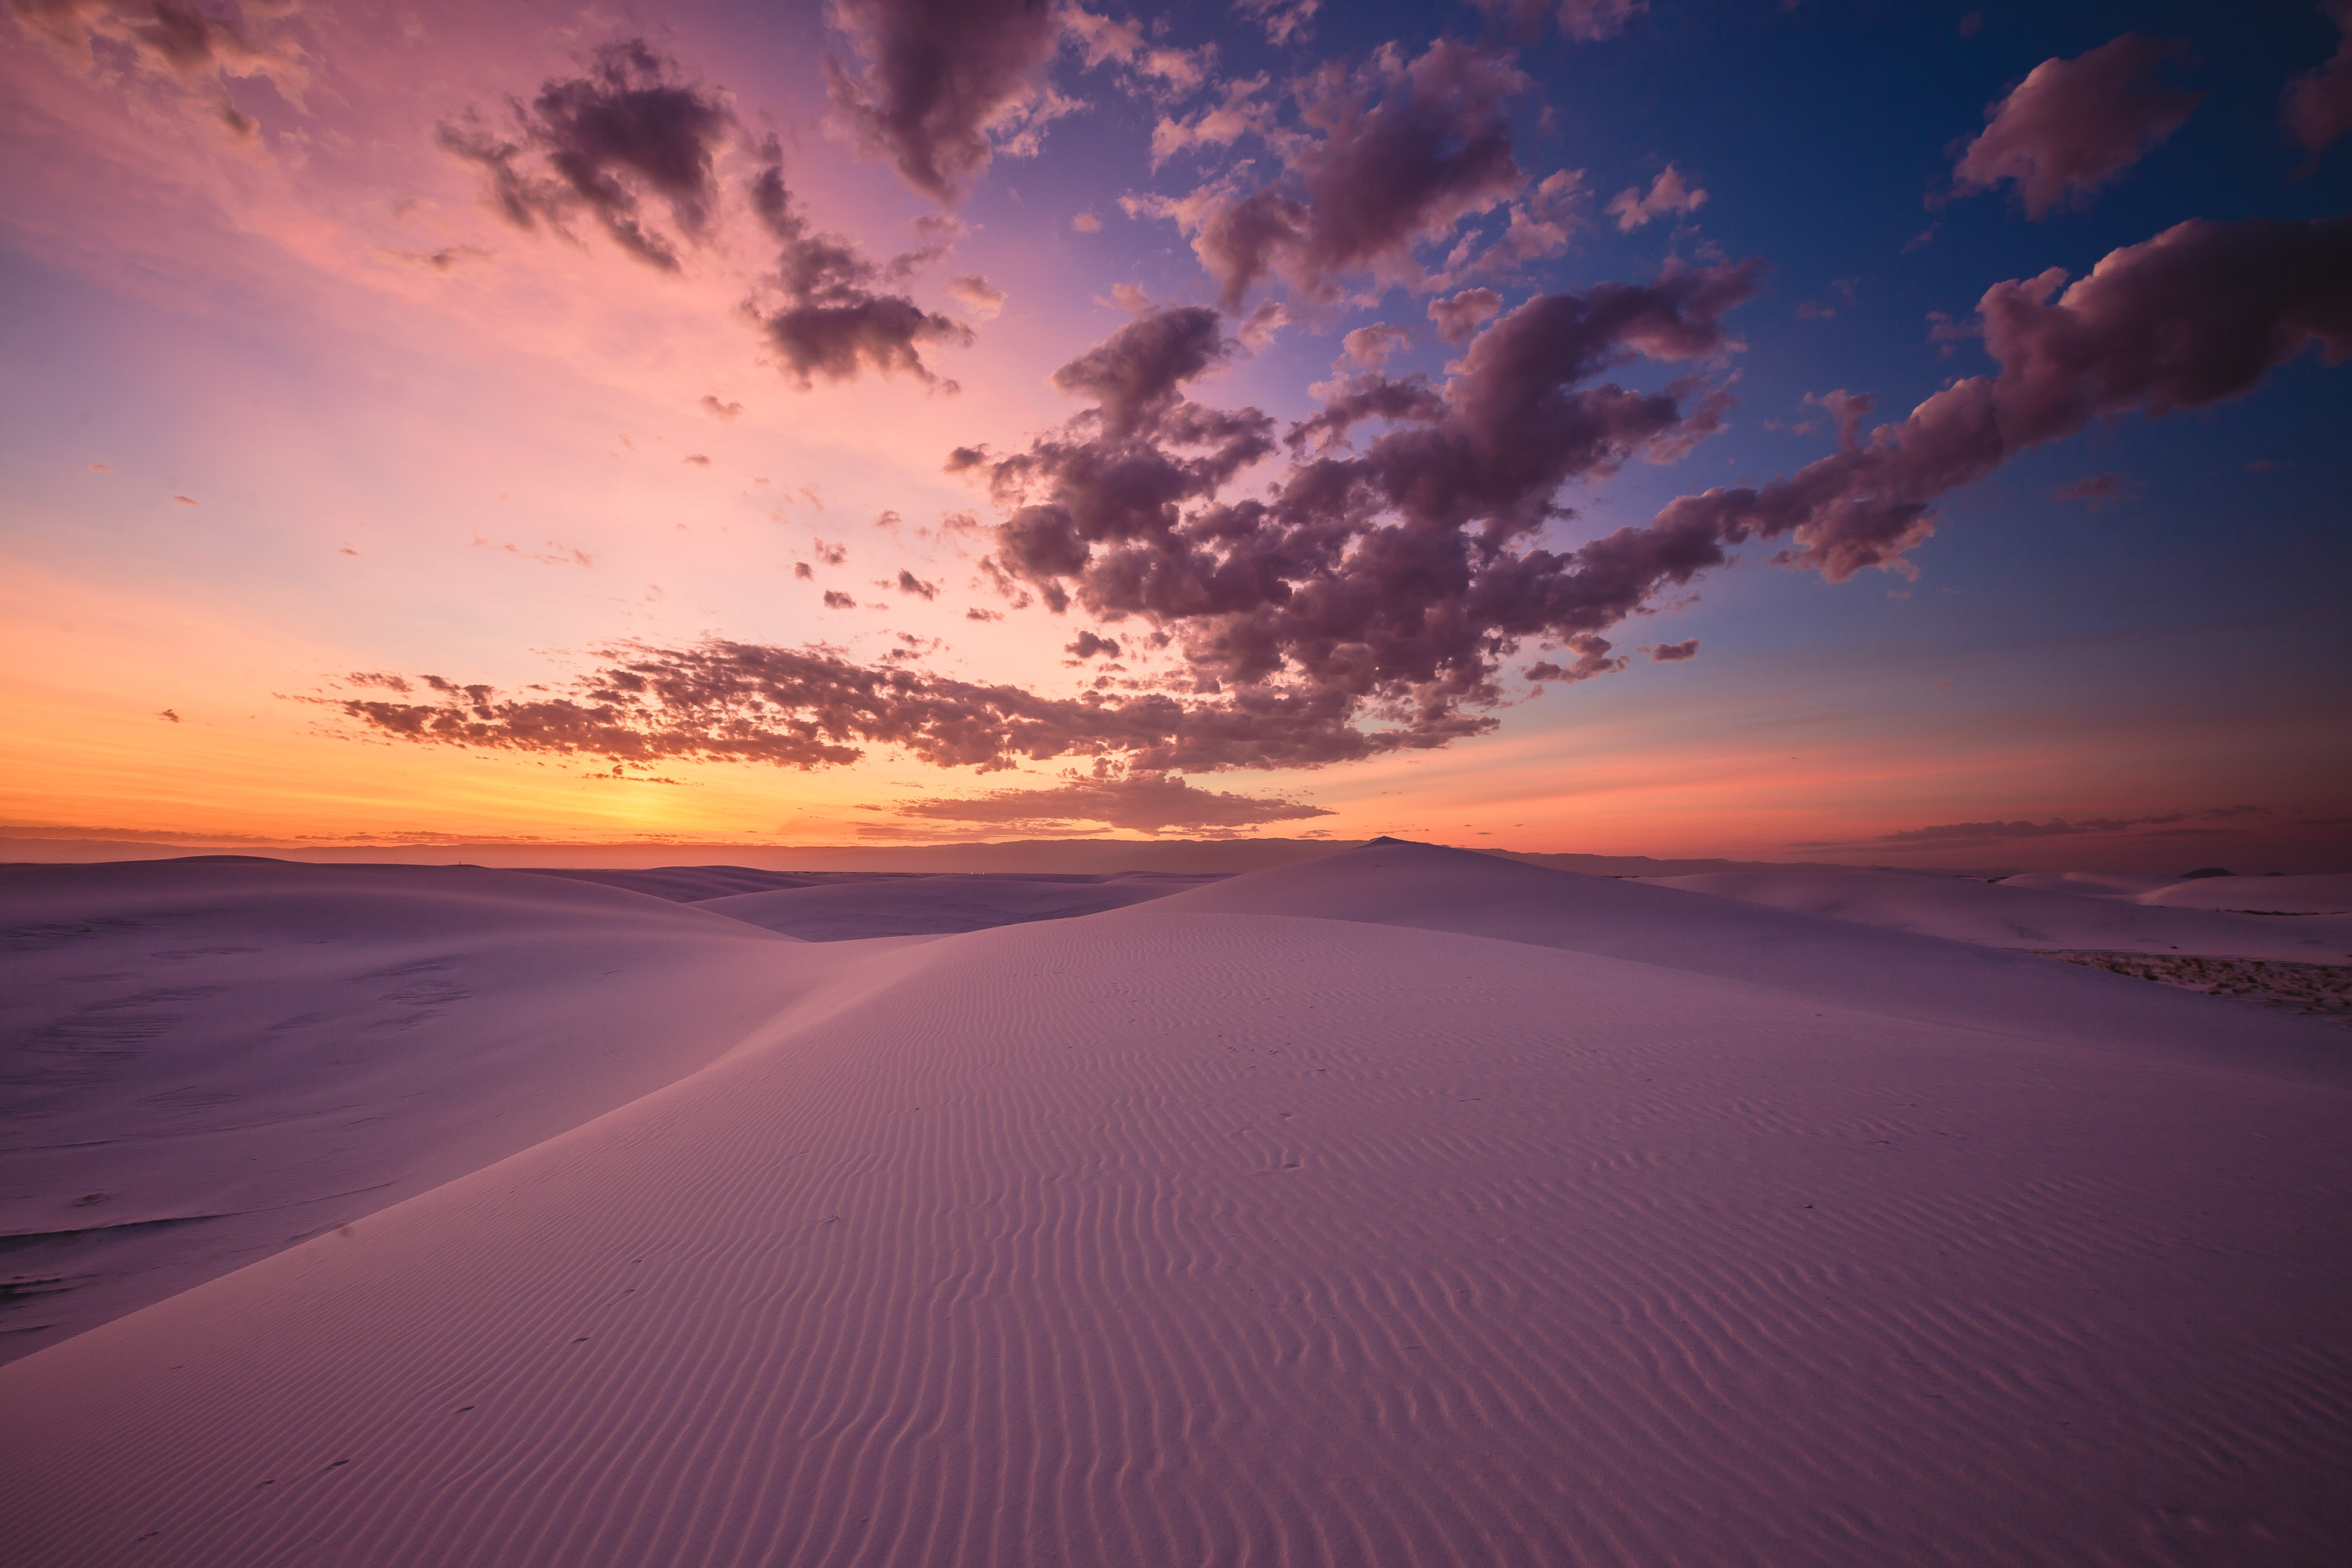 Ruidoso - New Mexico - Sunrise at White Sands